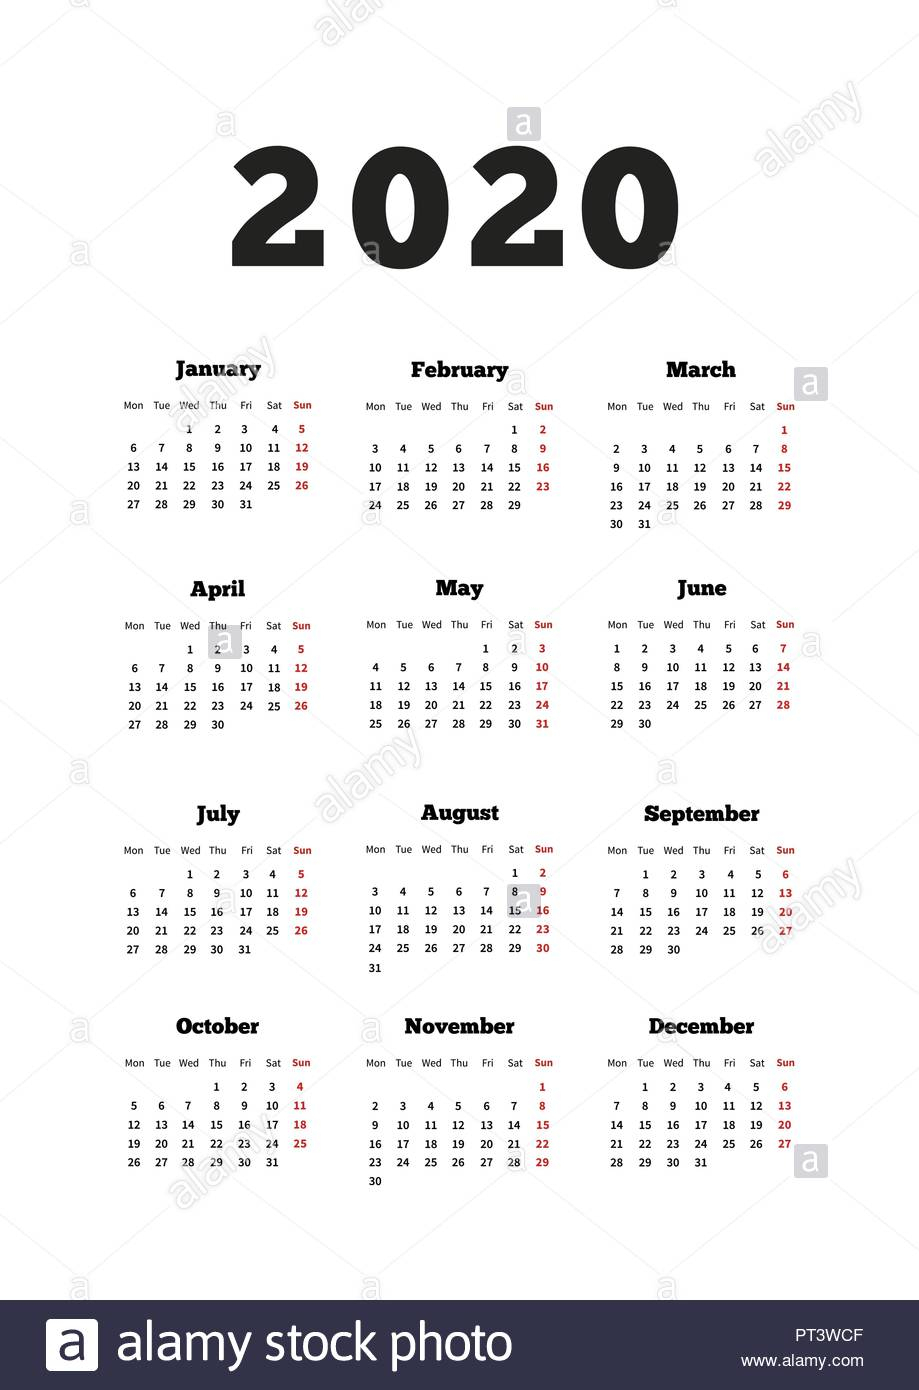 Calendar On 2020 Year With Week Starting From Monday, A4 Size throughout 2020 Calendar Starting With Monday